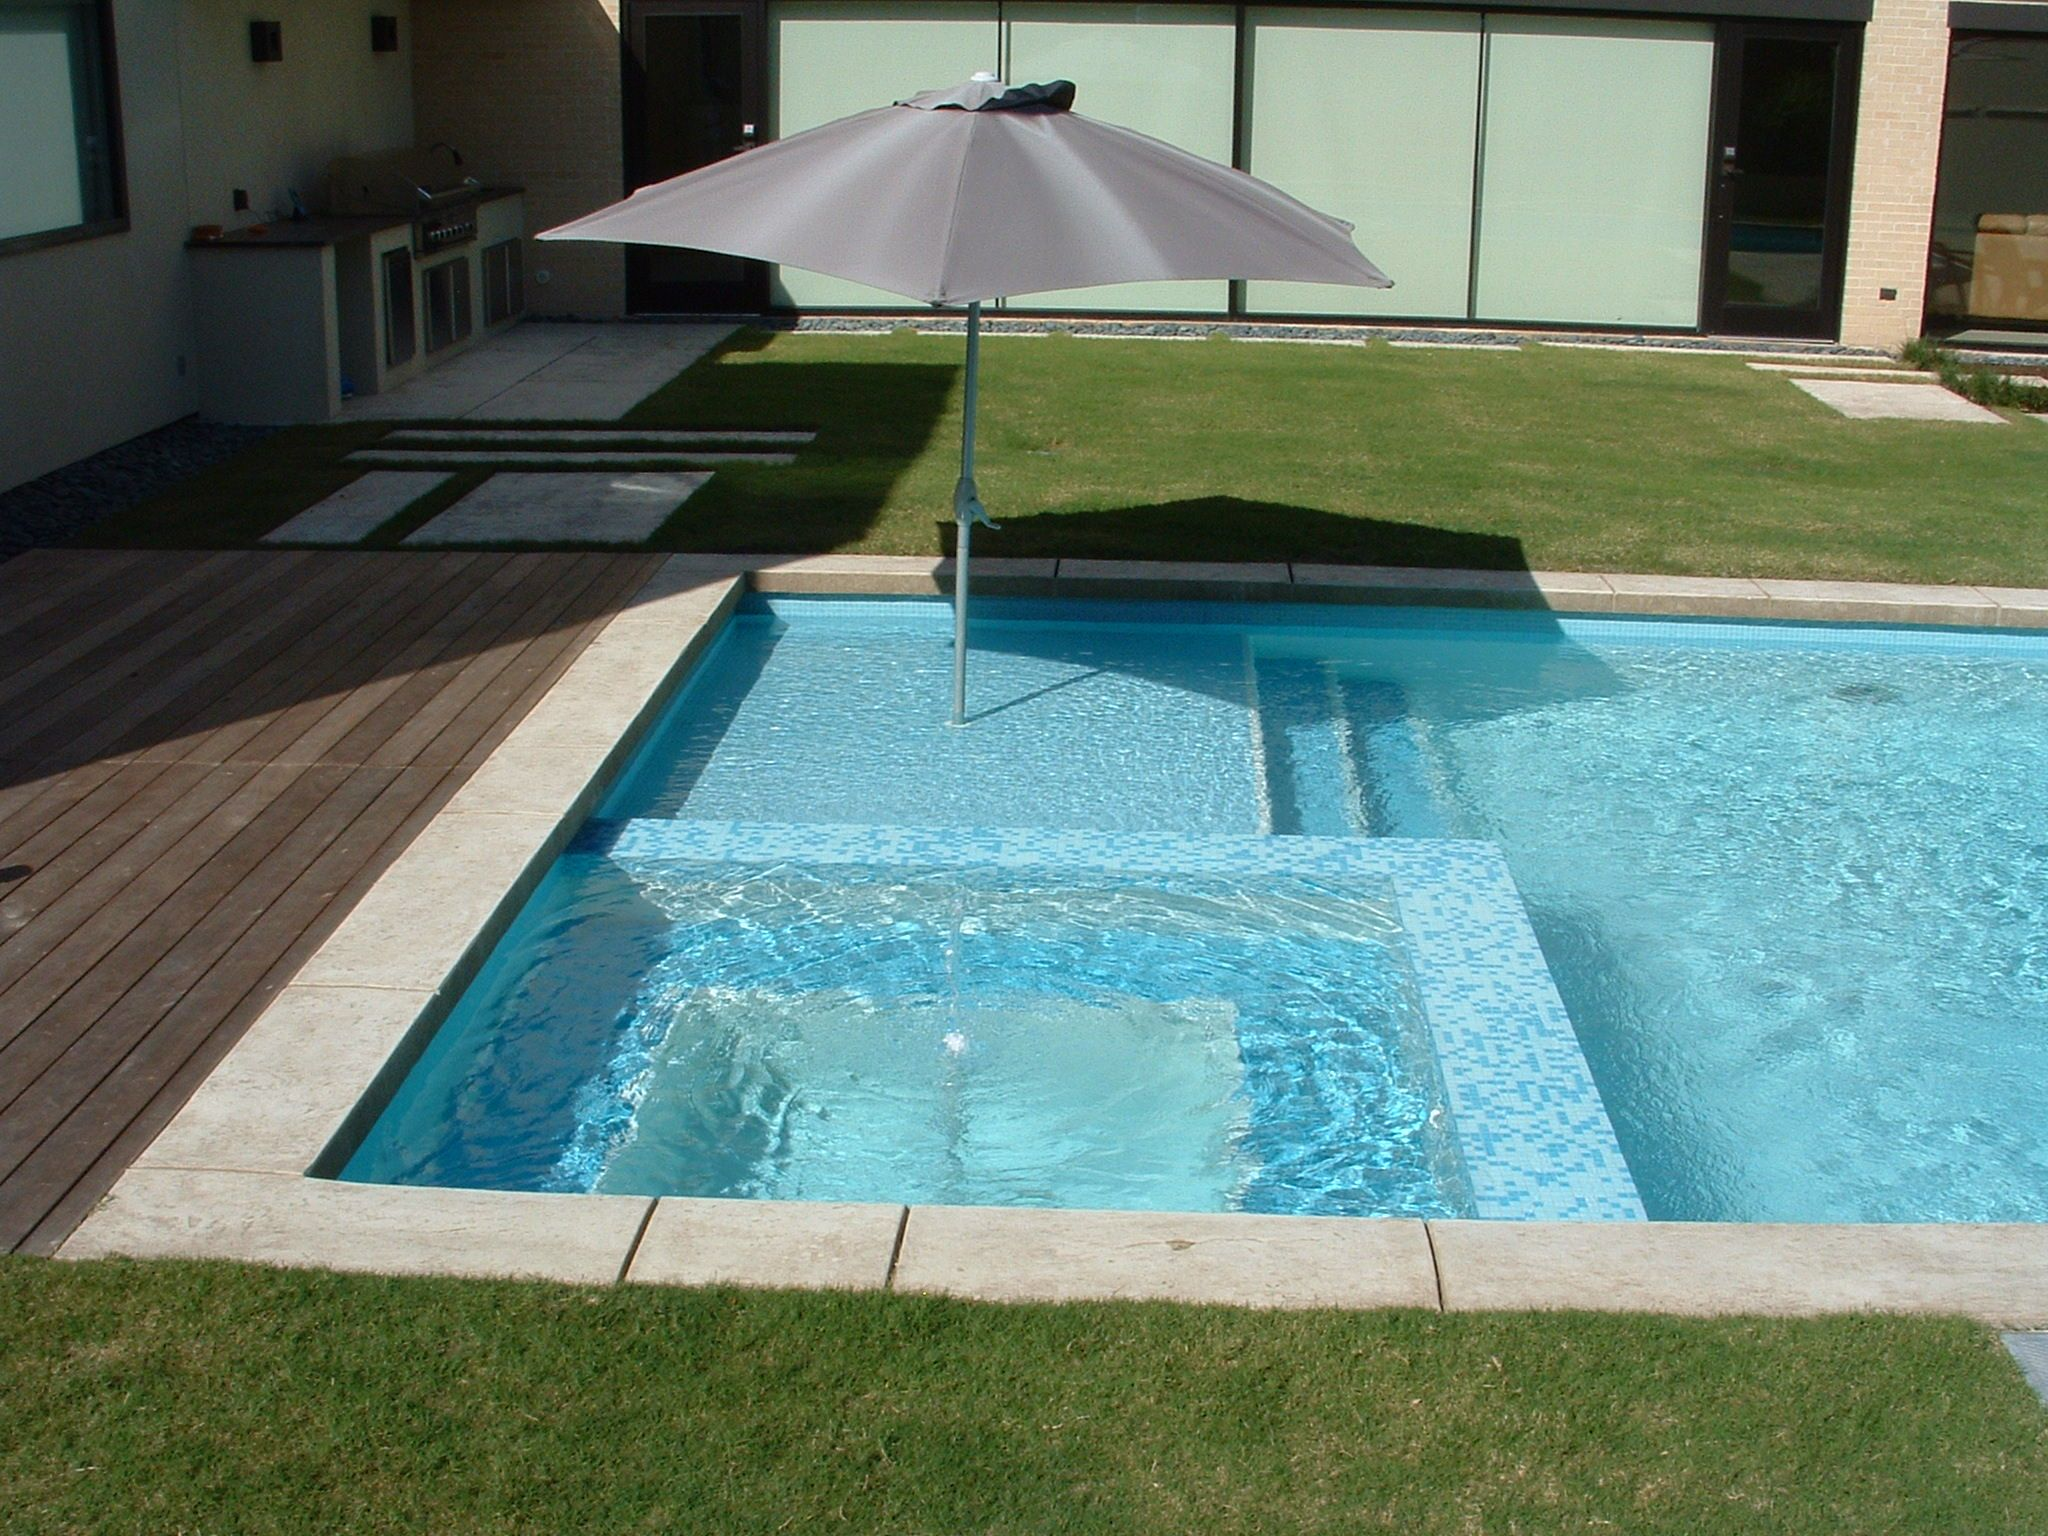 Pool Designs With Spa extraordinary square pool design ideas : white ceramic in ground